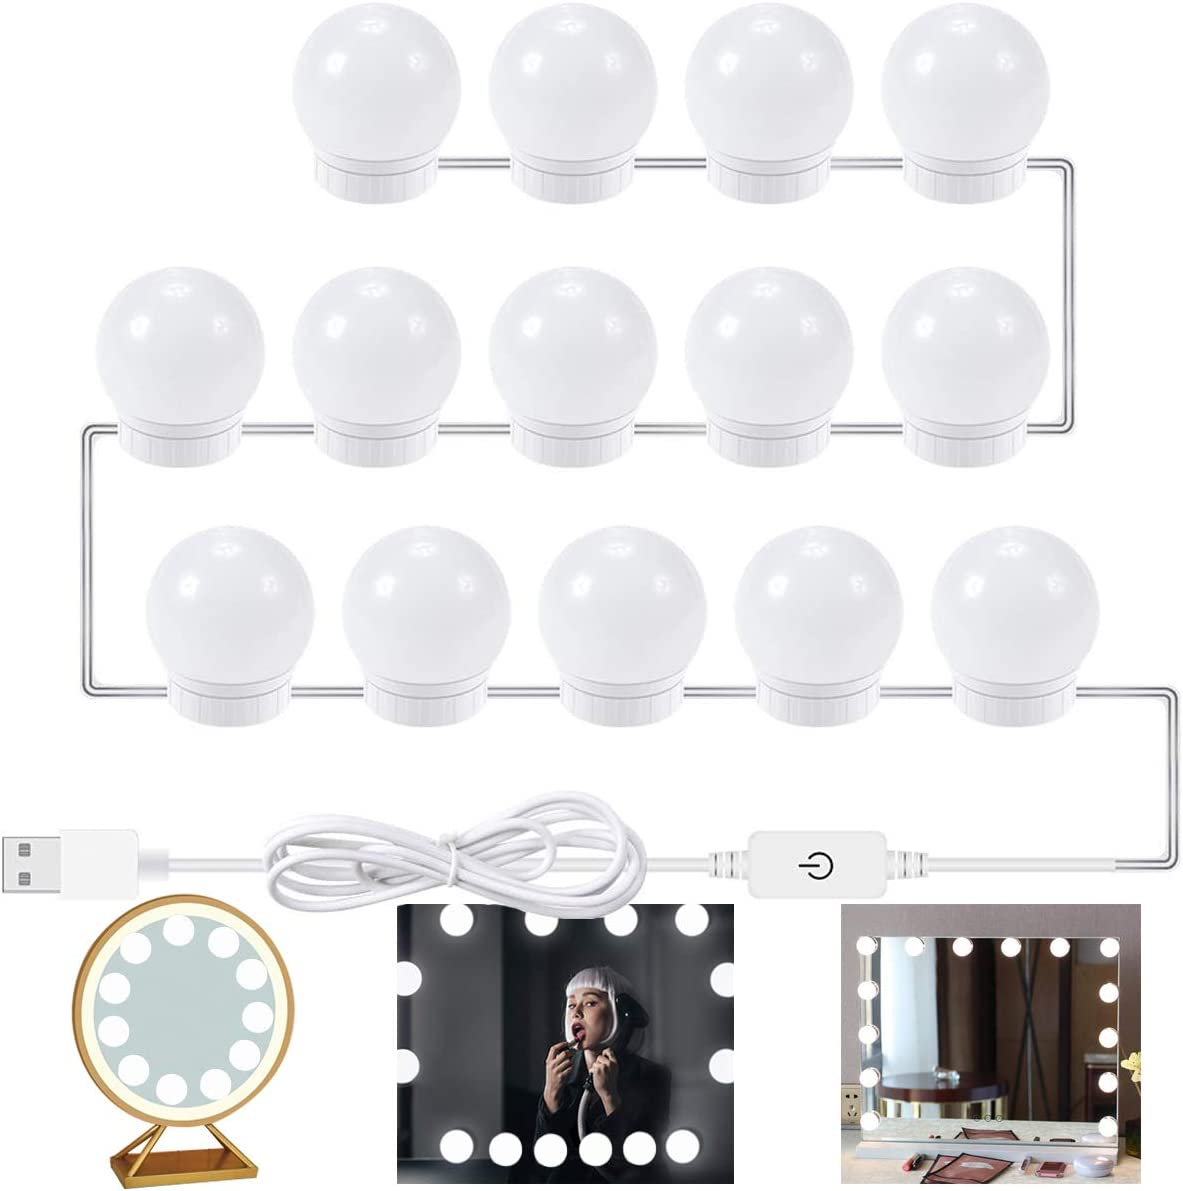 Alitade 14PCS DIY LED Vanity Mirror Lights Kit Dimmable LED Light Bulbs with Touch Control for Makeup Mirror Dressing Table Mirror Not Include